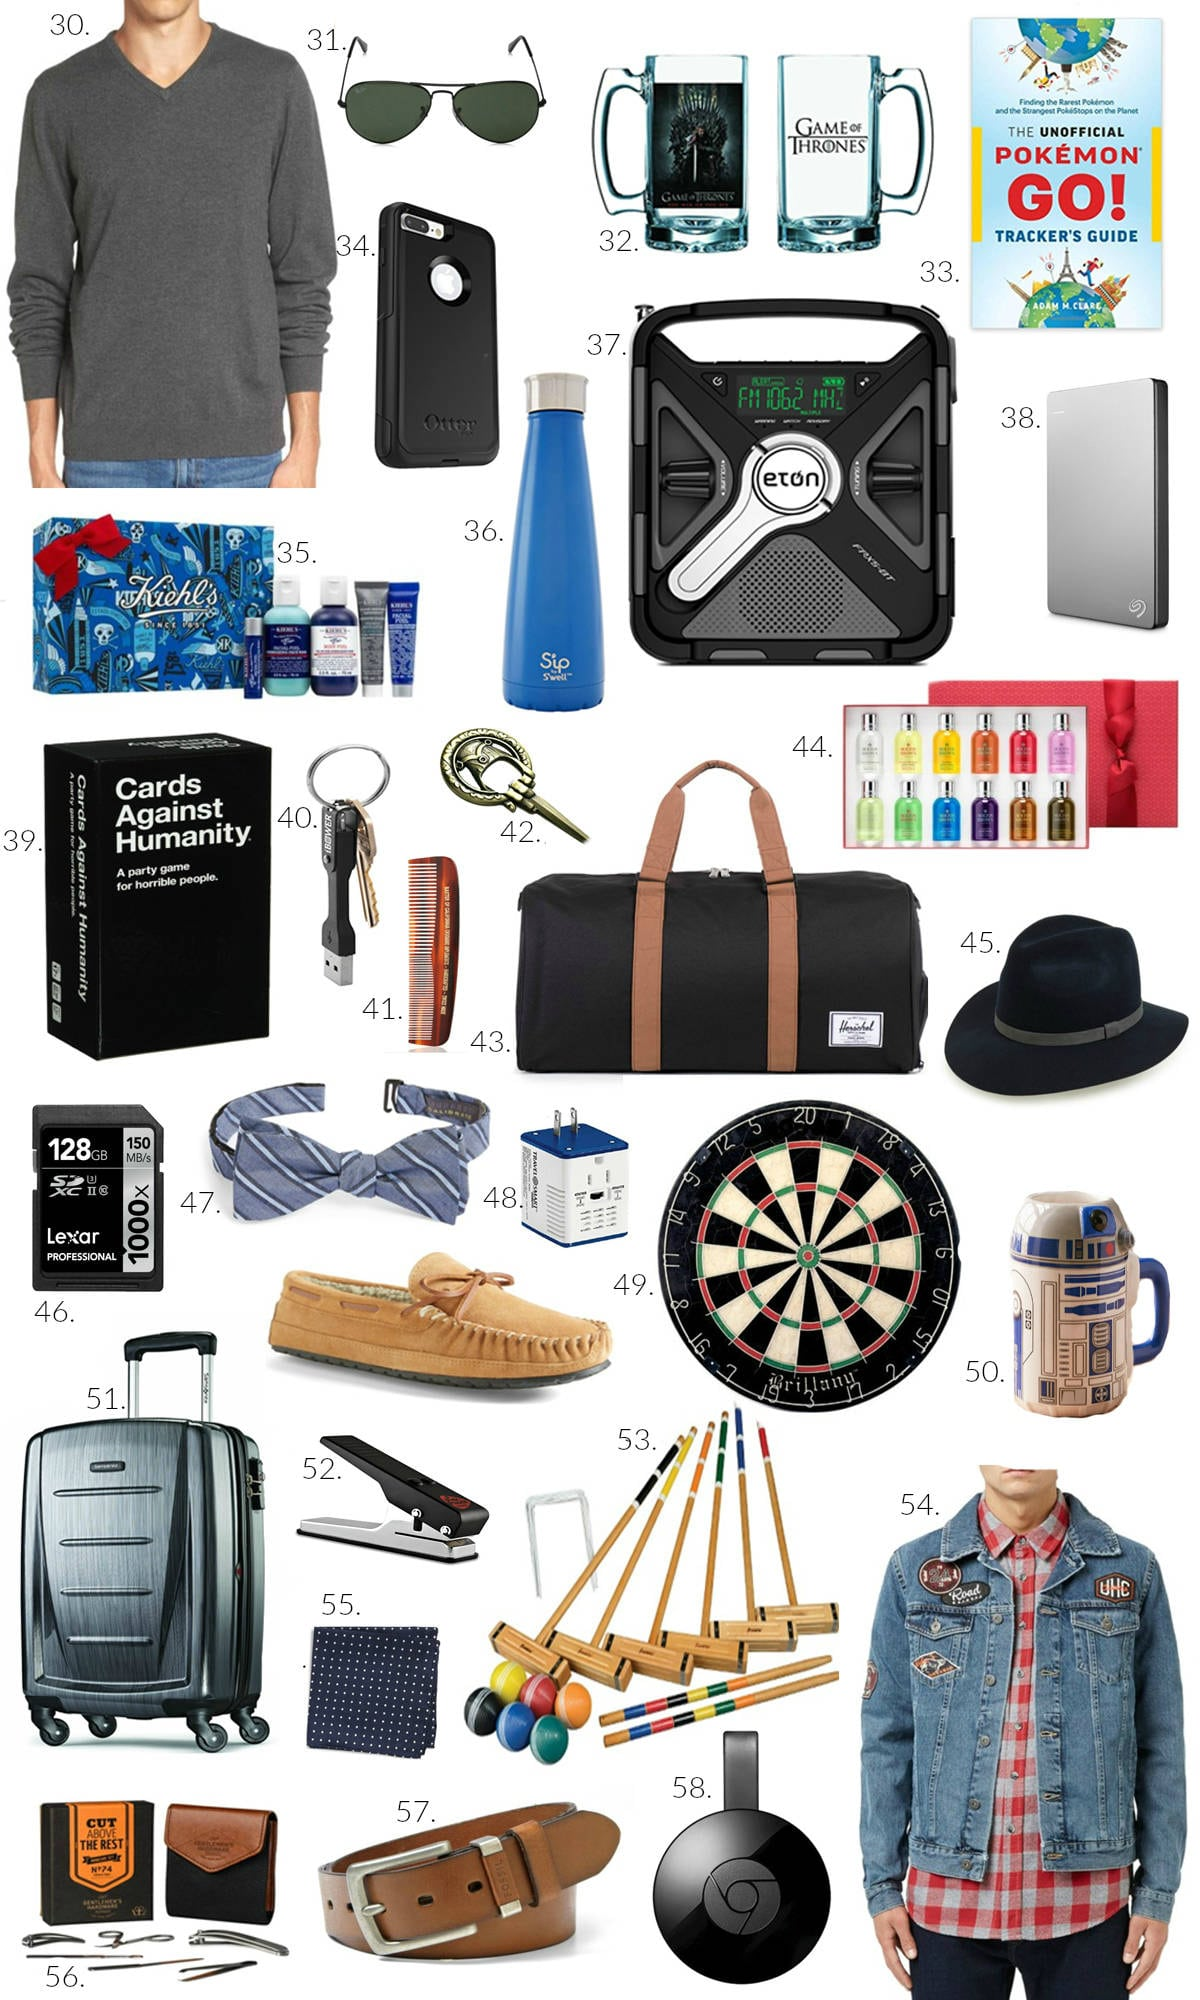 gifts for dad | gifts for brother | gifts for uncle | presents for grandpa | dart board, bow tie, luggage, pokemon go, aviator sunglasses, cards against humanity